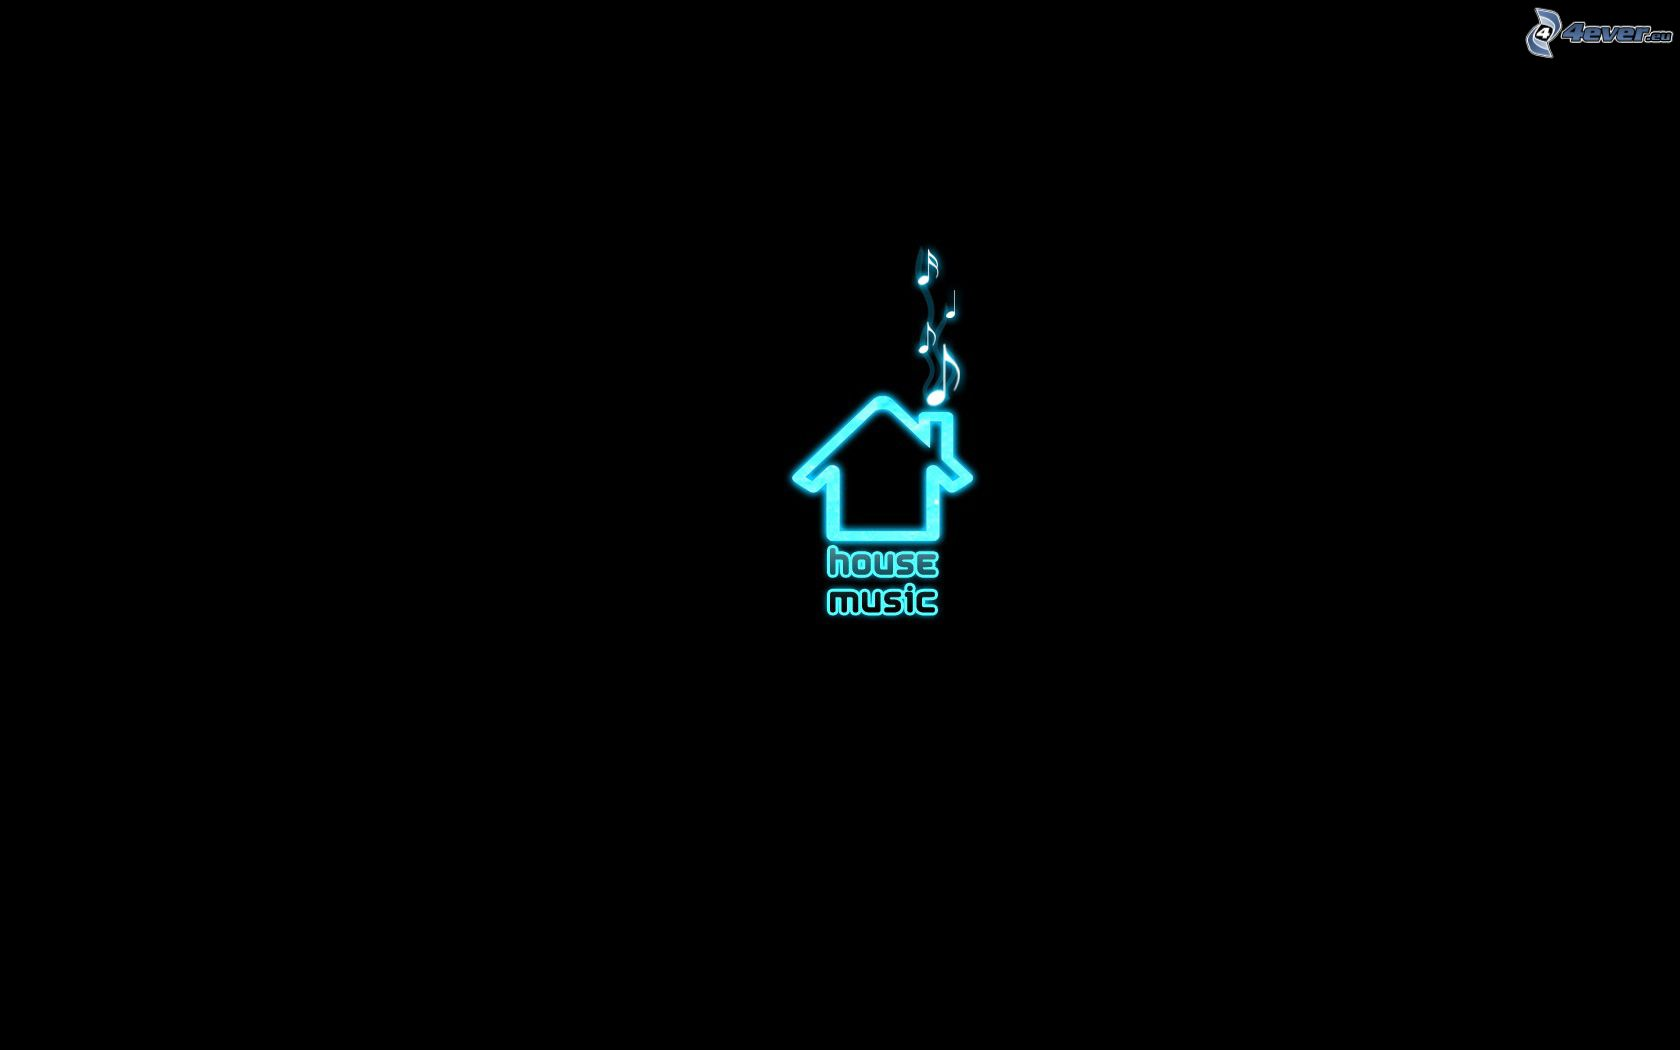 House music for Musik hause